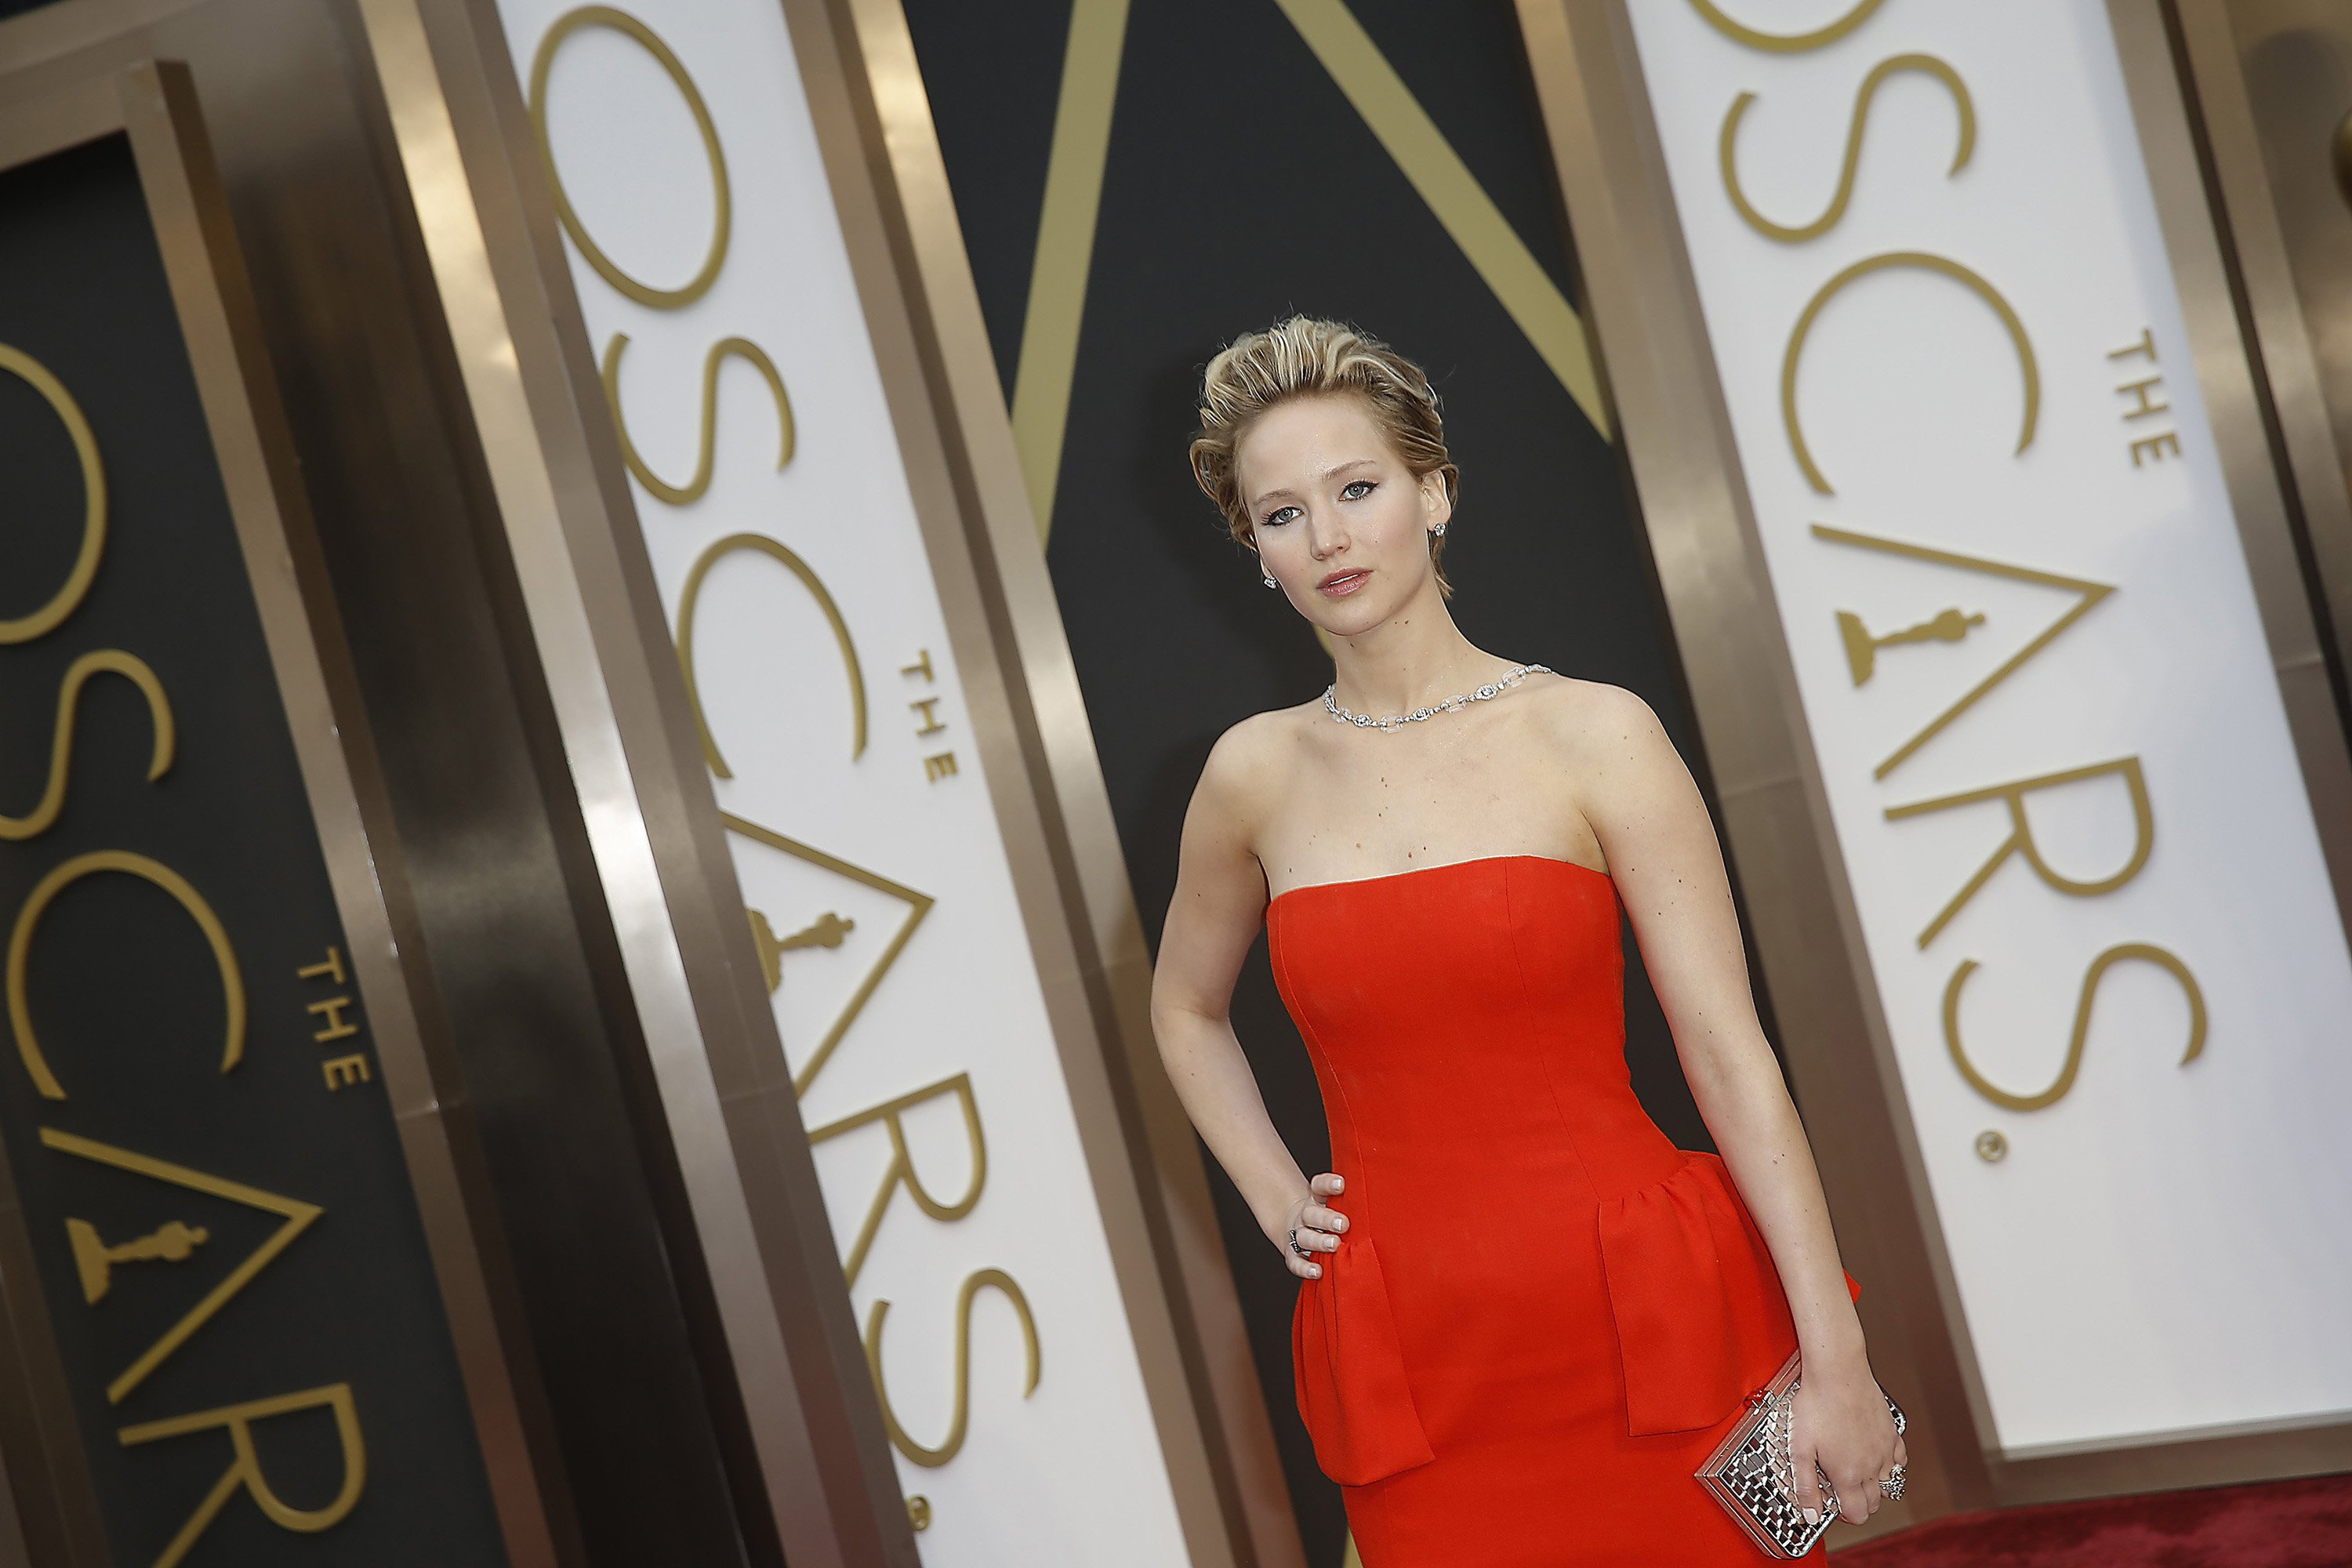 Jennifer Lawrence arrives at the 86th annual Academy Awards March 2 in Los Angeles. Credit: Courtesy of MCT